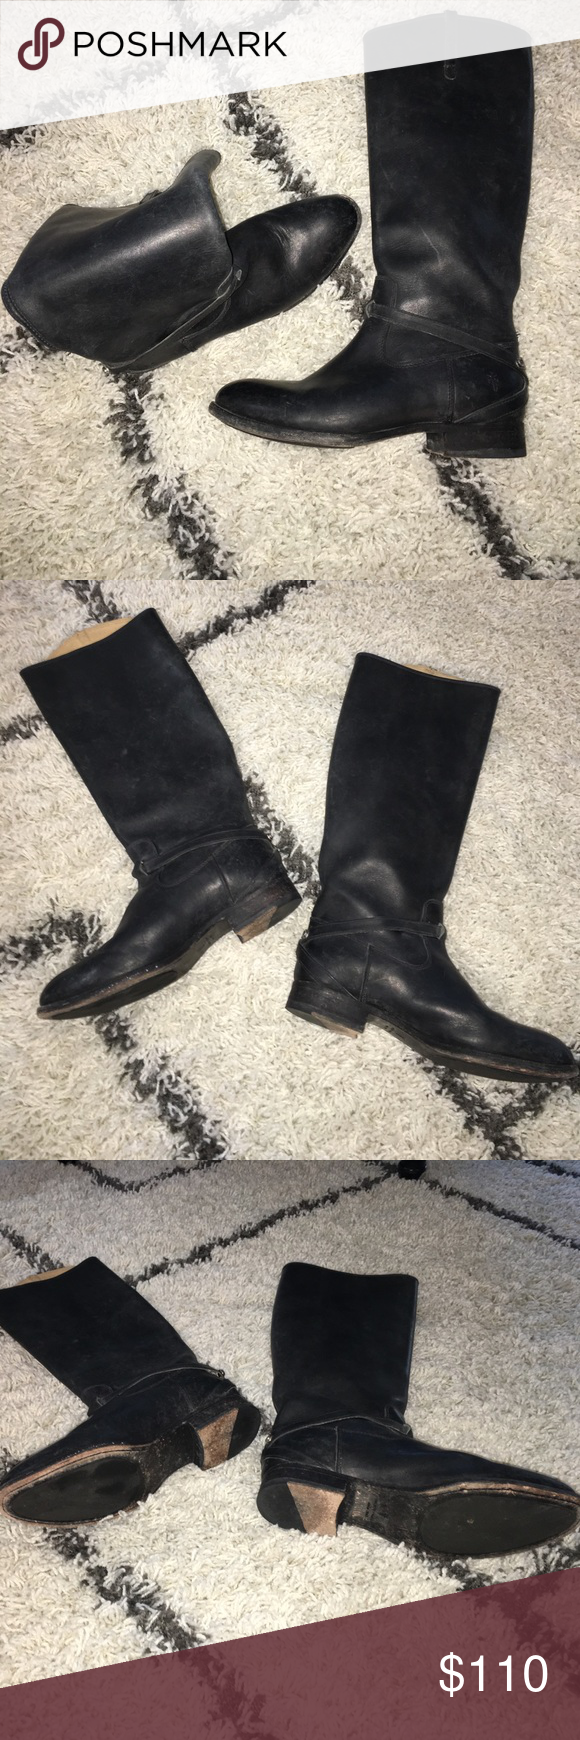 Frye Boot sz 9 tall riding black leather Frye Boots. Sz 9. Leather. Nice! Frye Shoes